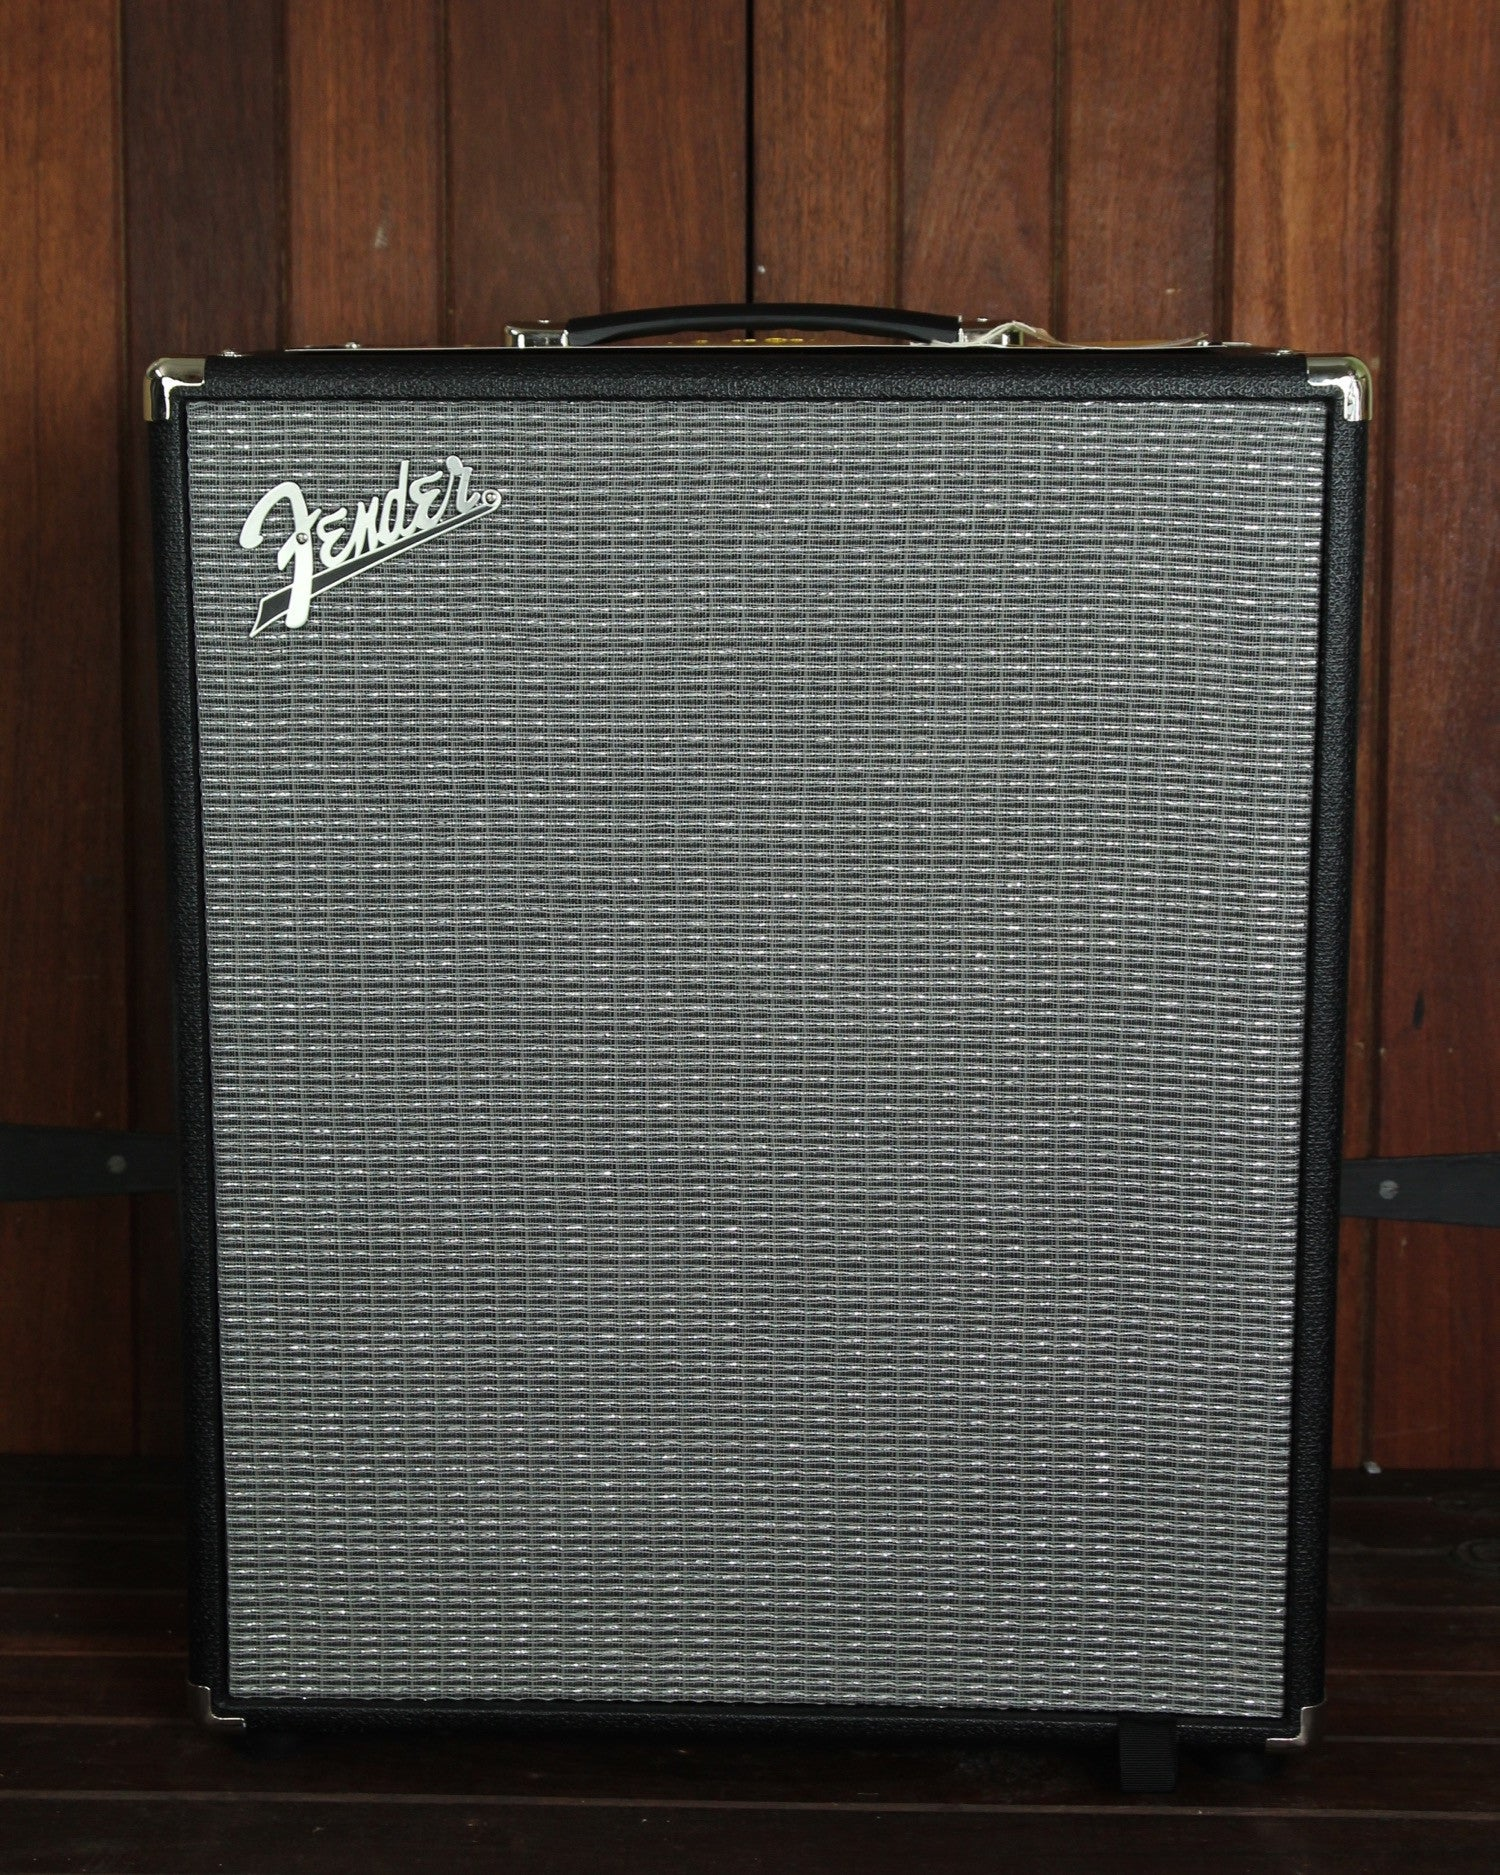 Fender Rumble 500 Combo Bass Amplifier - The Rock Inn - 1